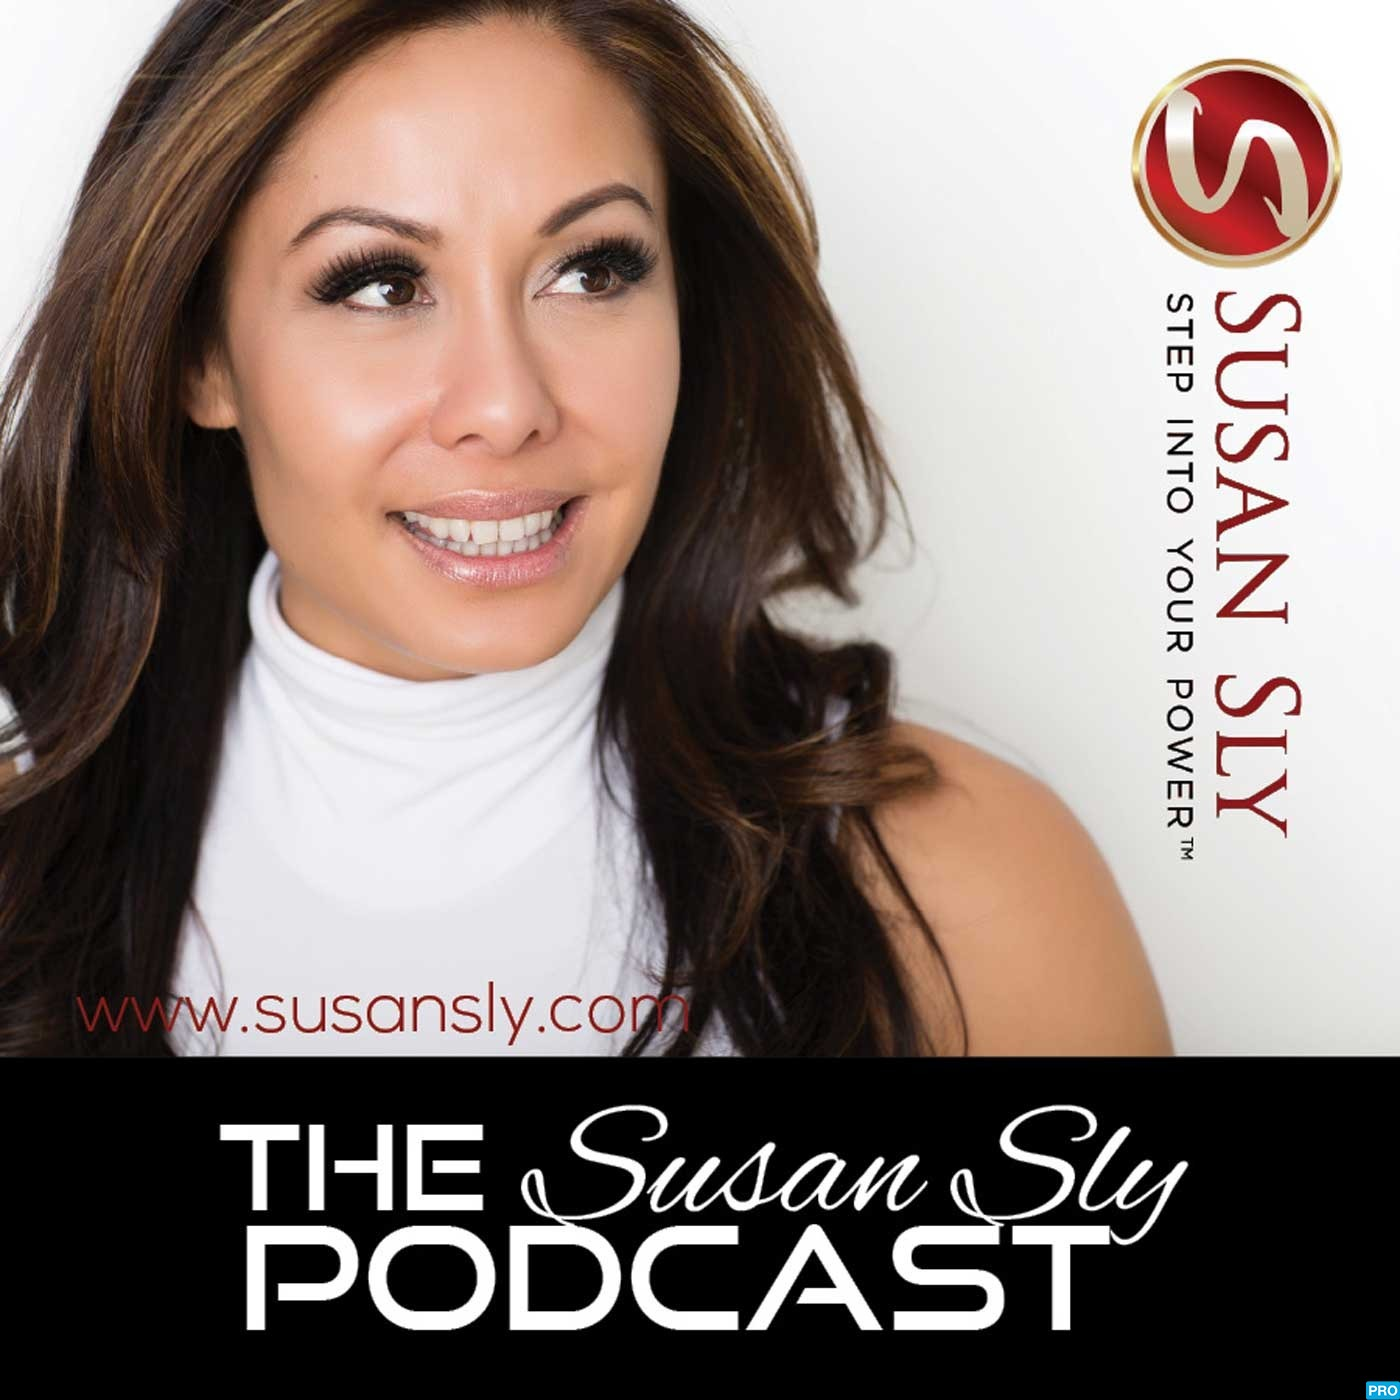 The Susan Sly Podcast